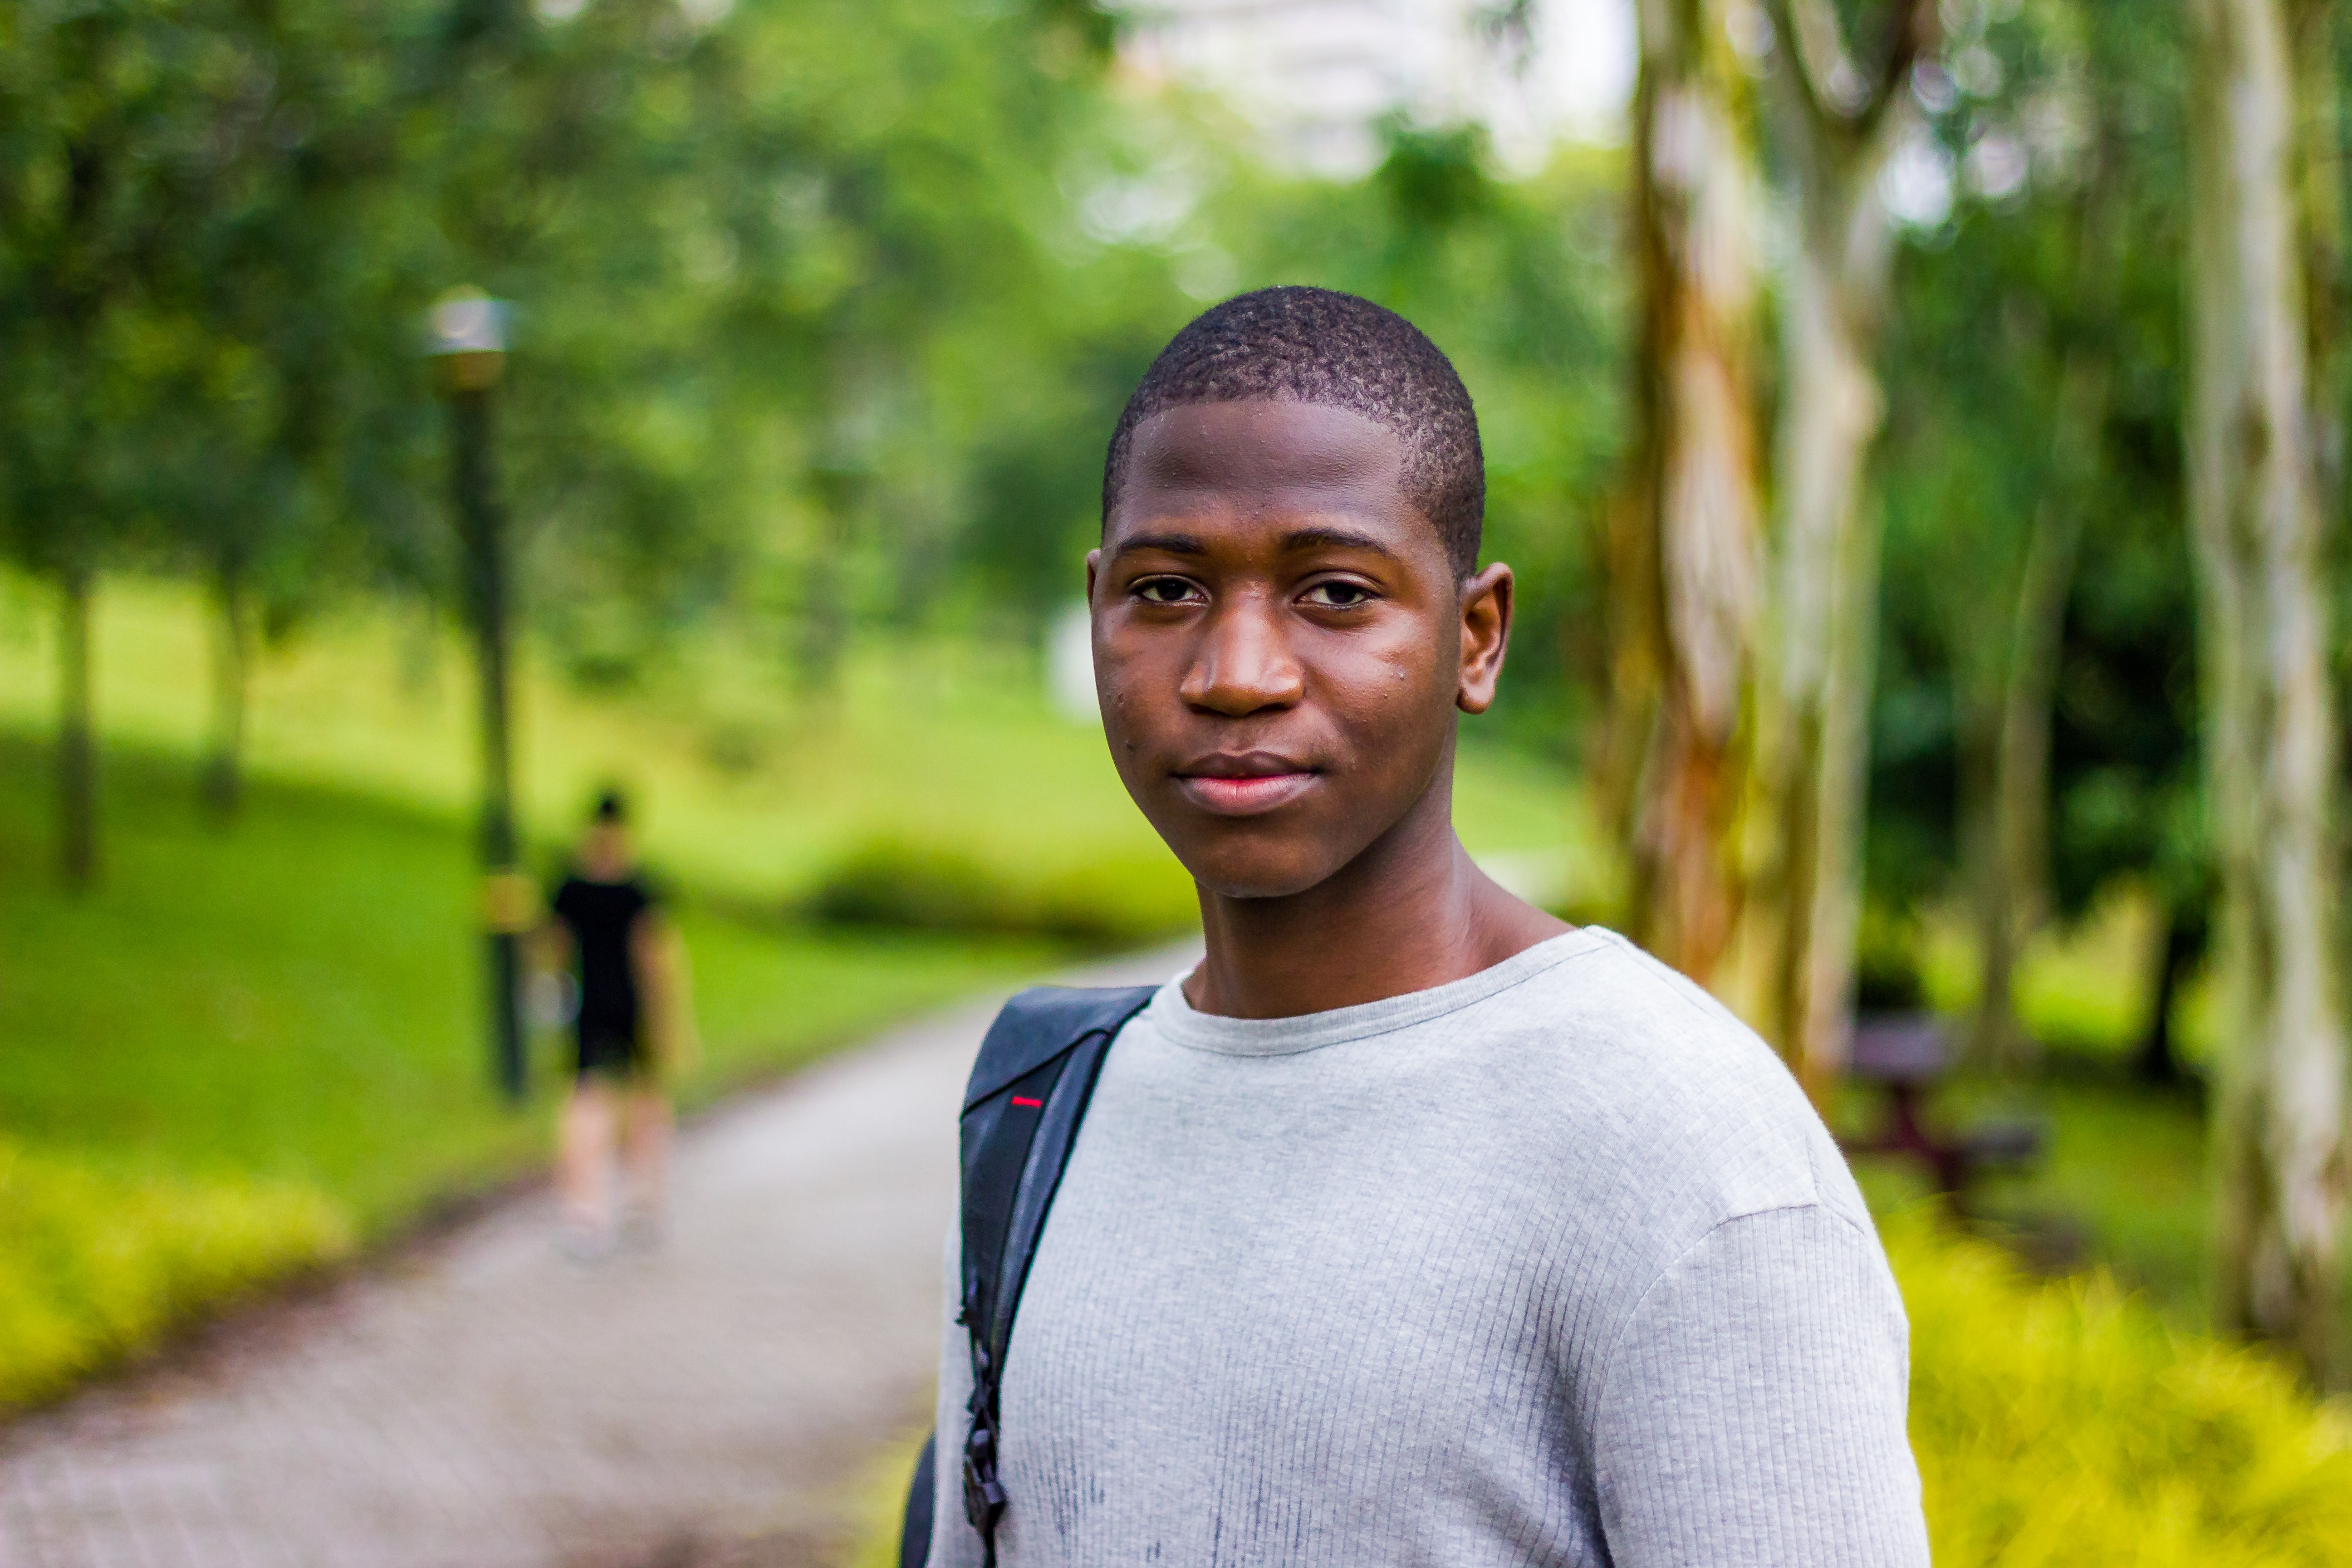 Black male student looking at camera